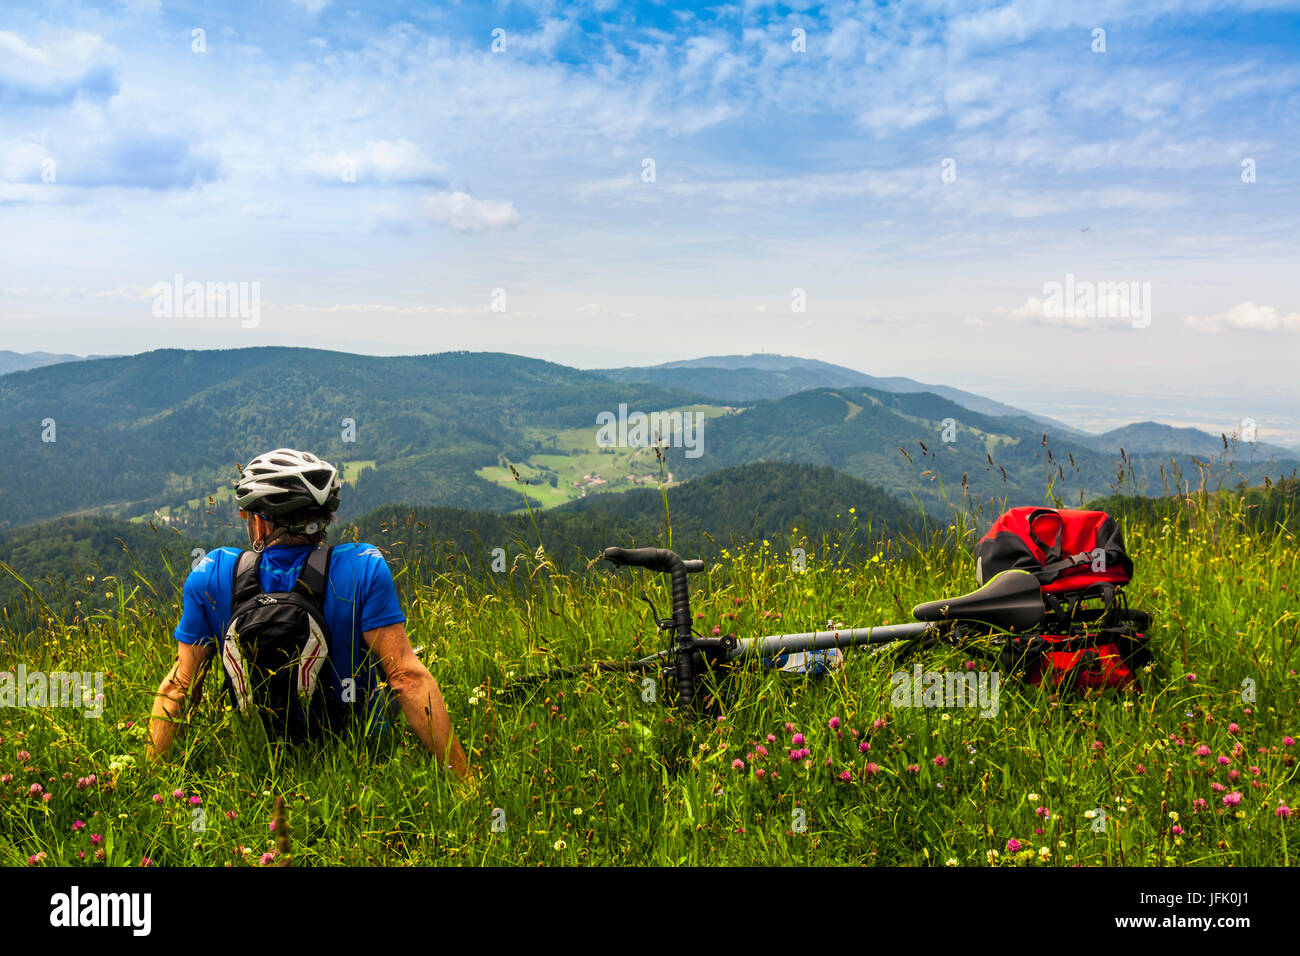 Rear view of man relaxing on grass and looking at mountains Stock Photo